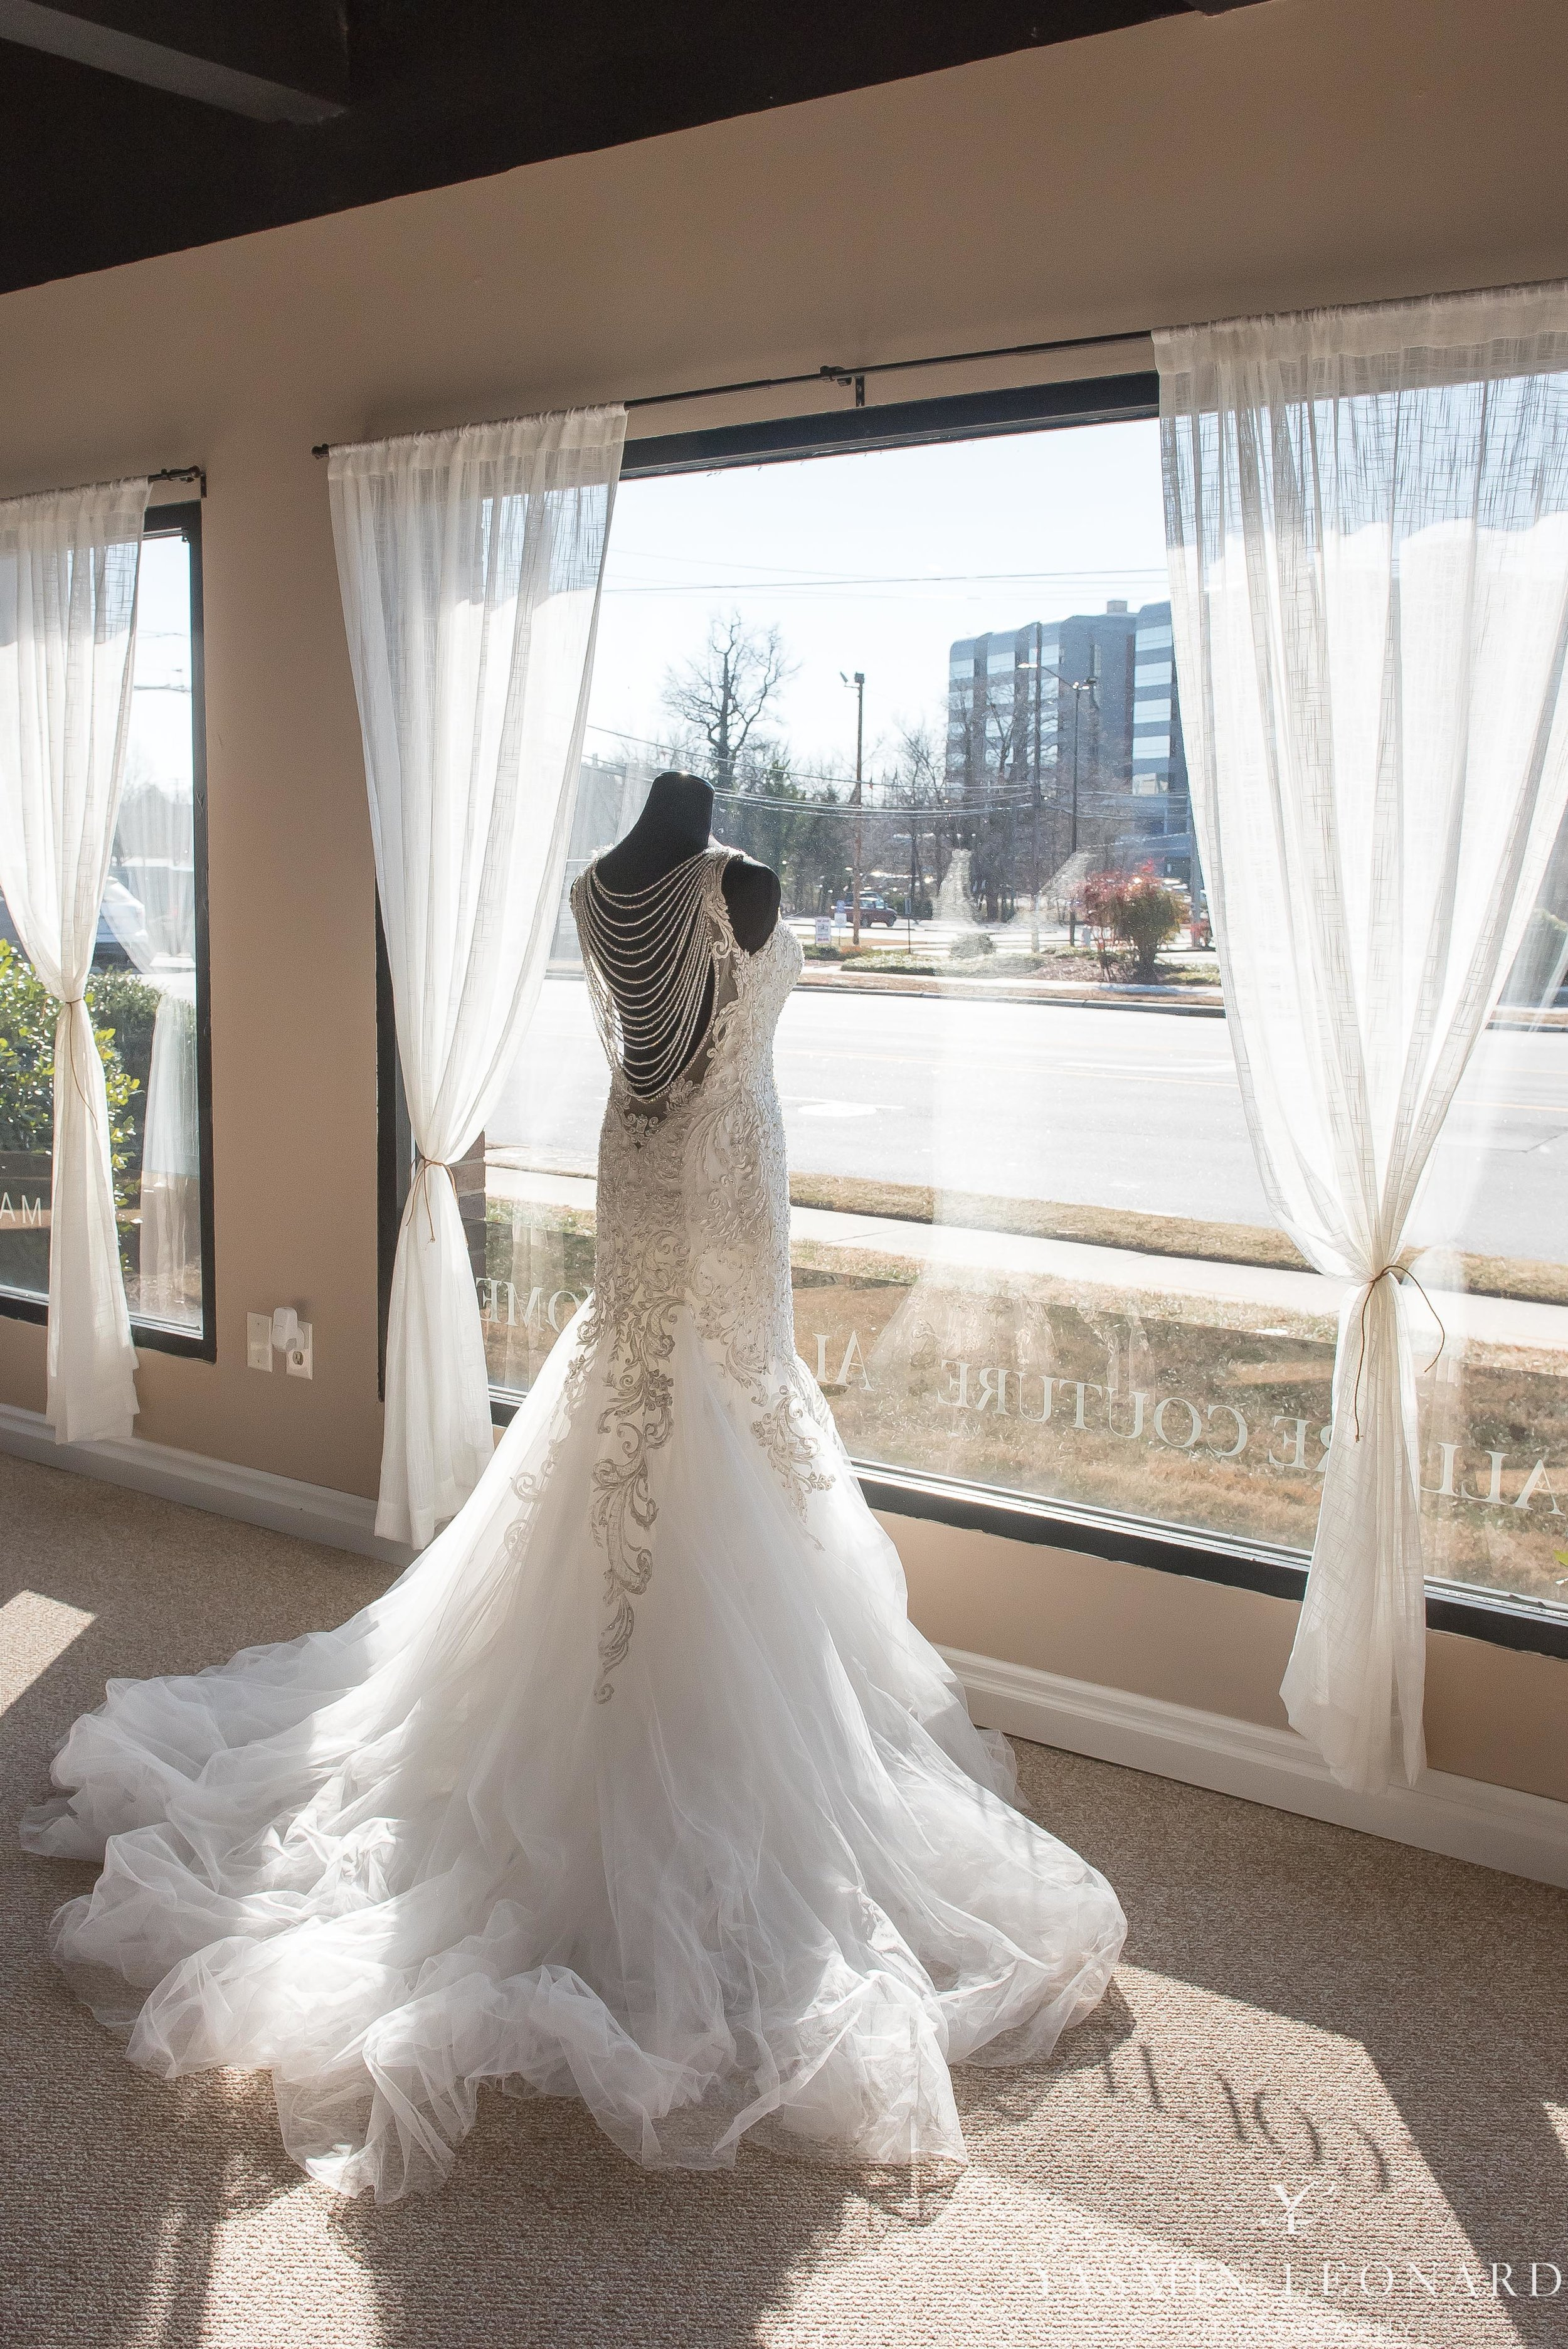 Dashing Dames Bridal and Boutique - High Point Bridal Shop - Bridal Store in High Point - Yasmin Leonard Photography-13.jpg